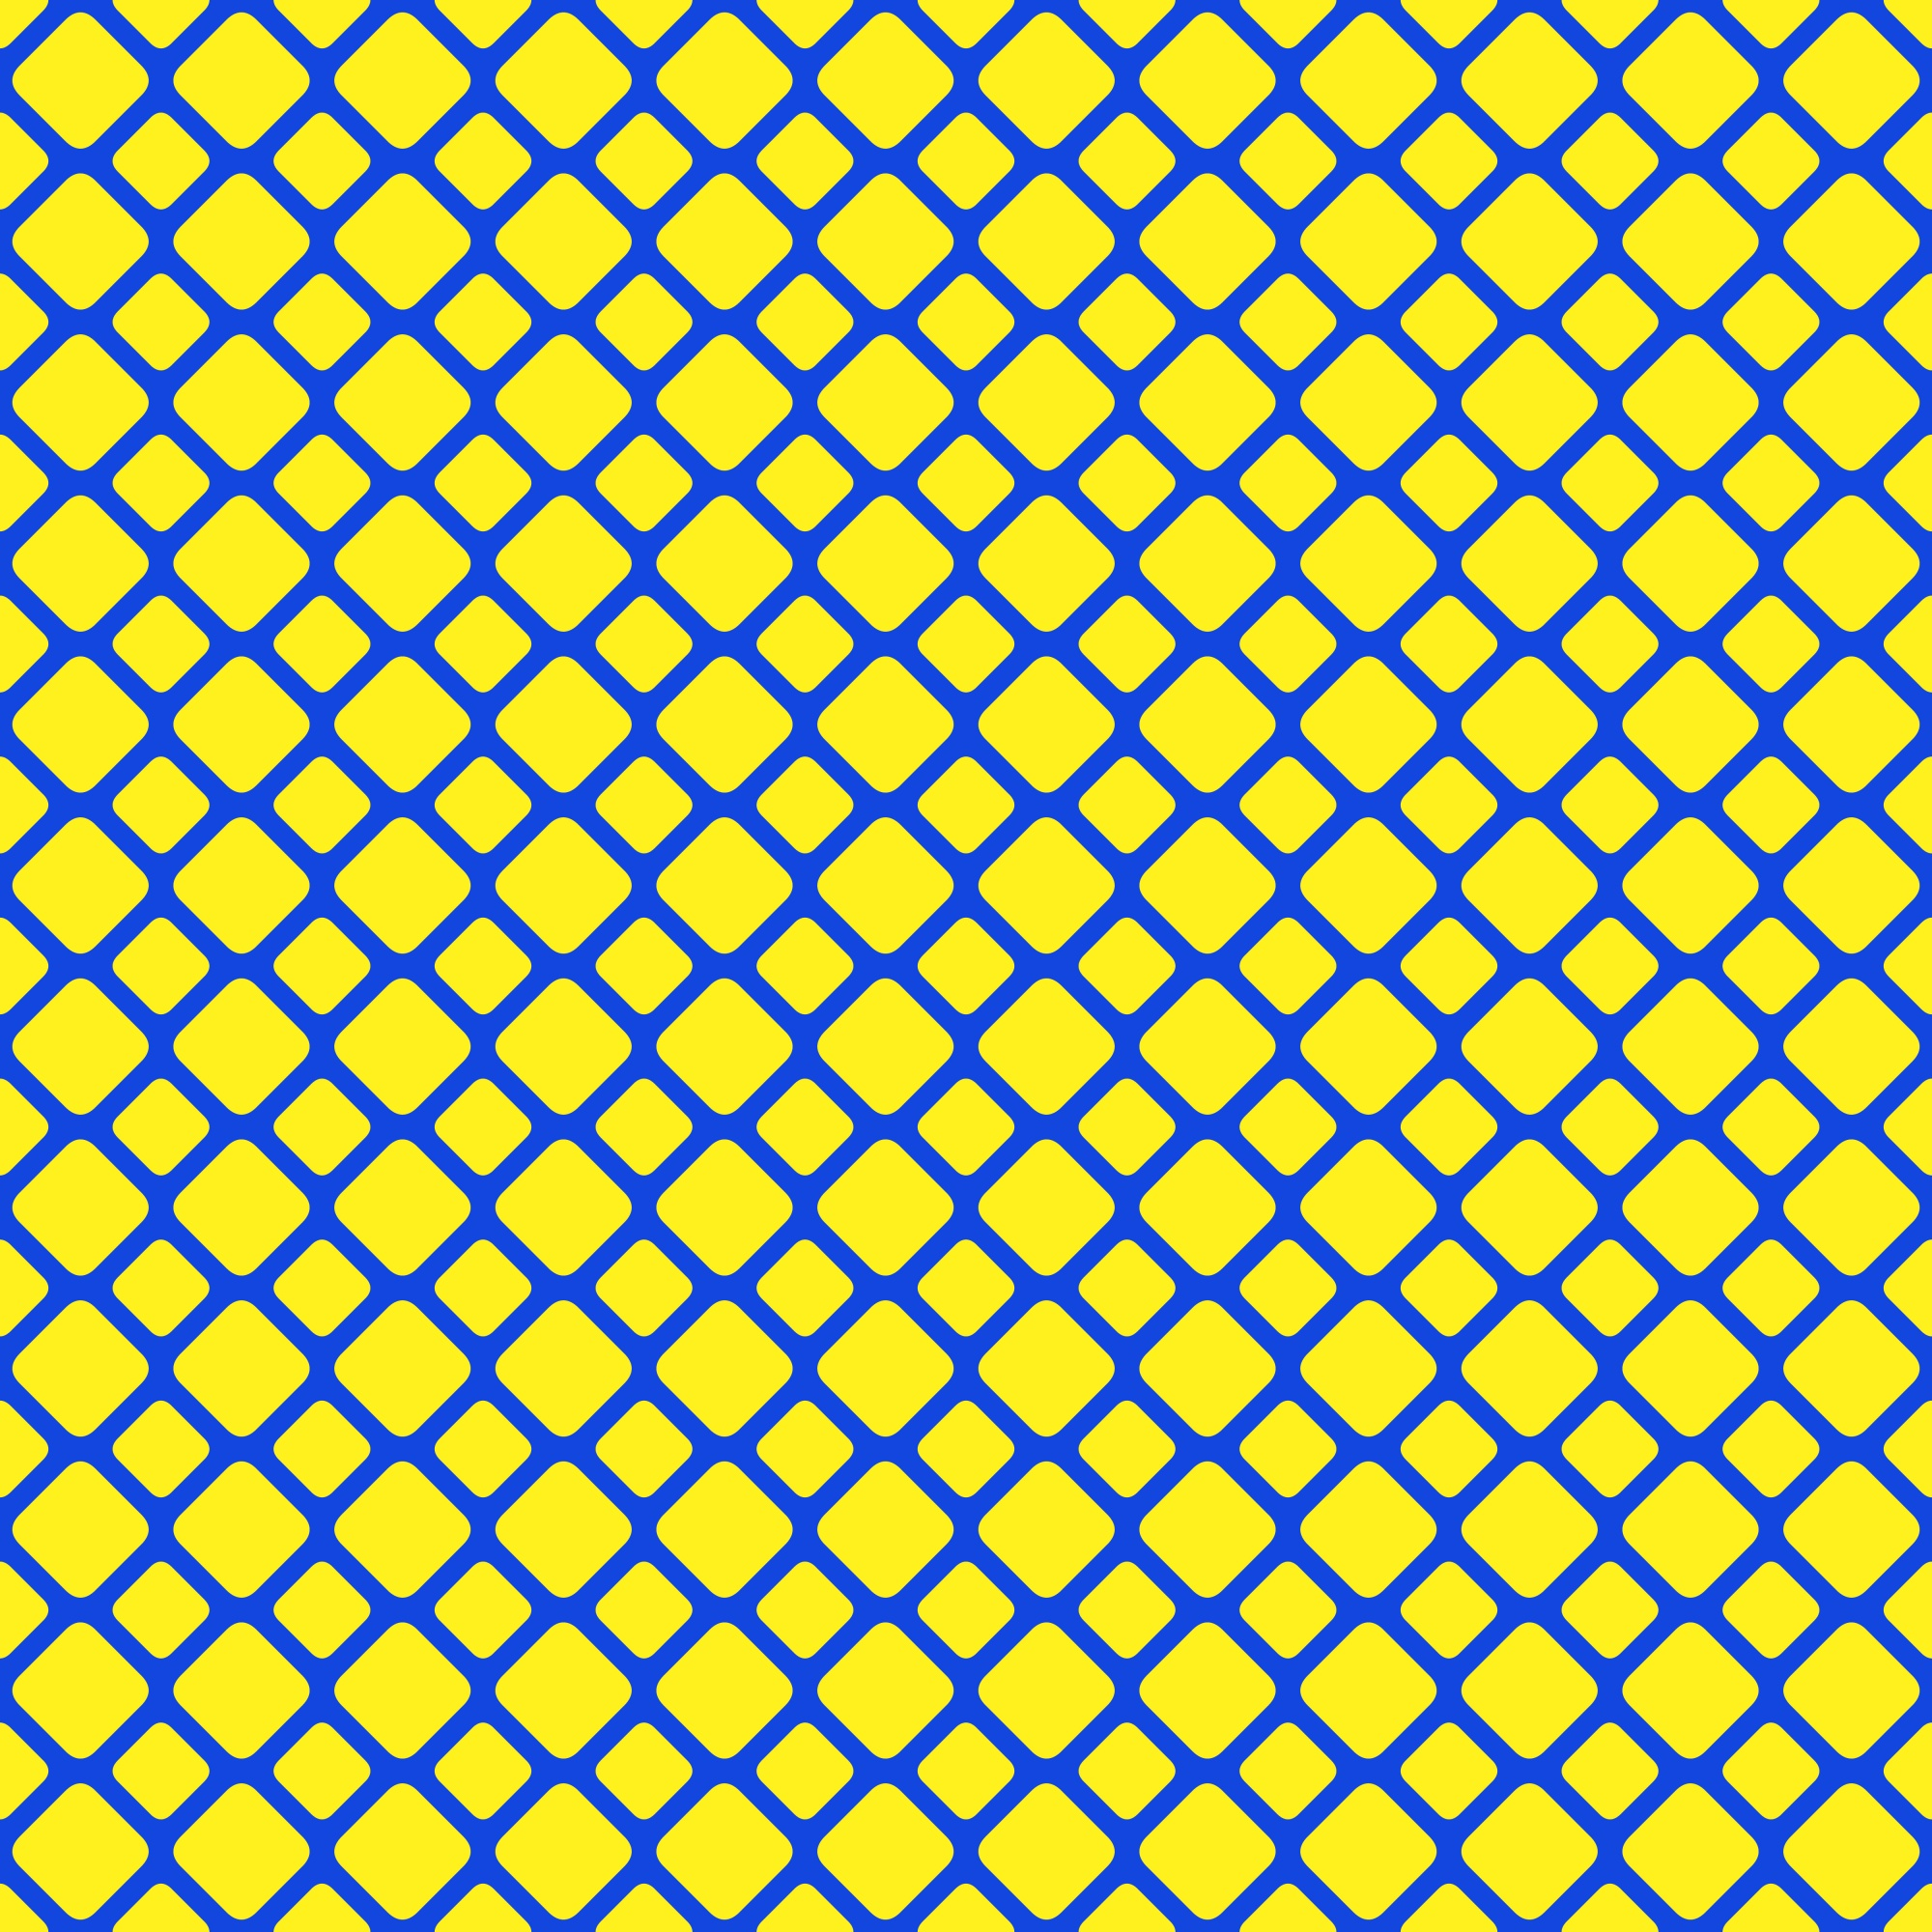 Yellow and blue seamless rounded square grid pattern background - vector graphic